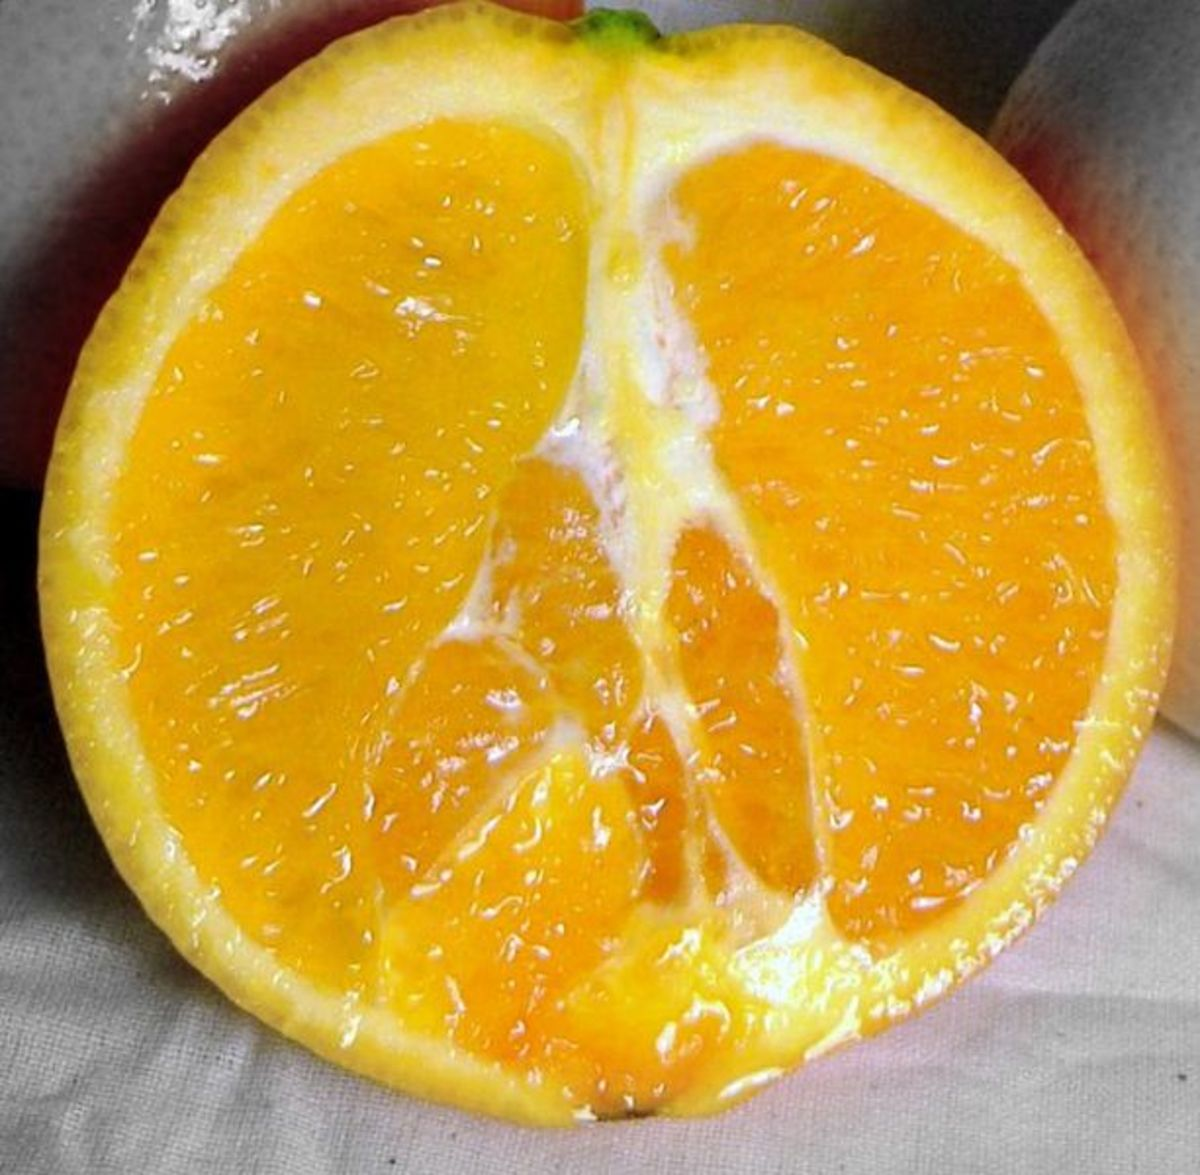 Yongxinge photographed this navel orange on March 14, 2006.